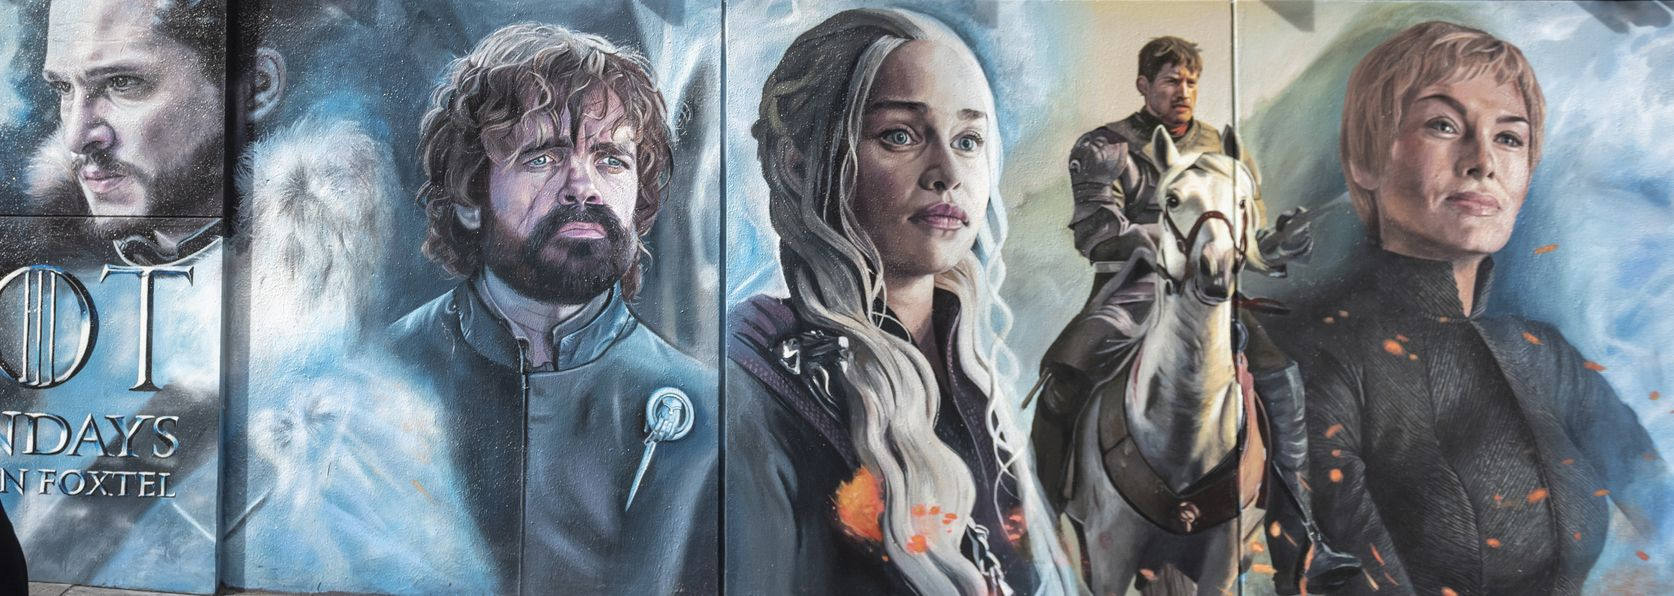 Useful Lessons in Leadership from the Popular Game of Thrones